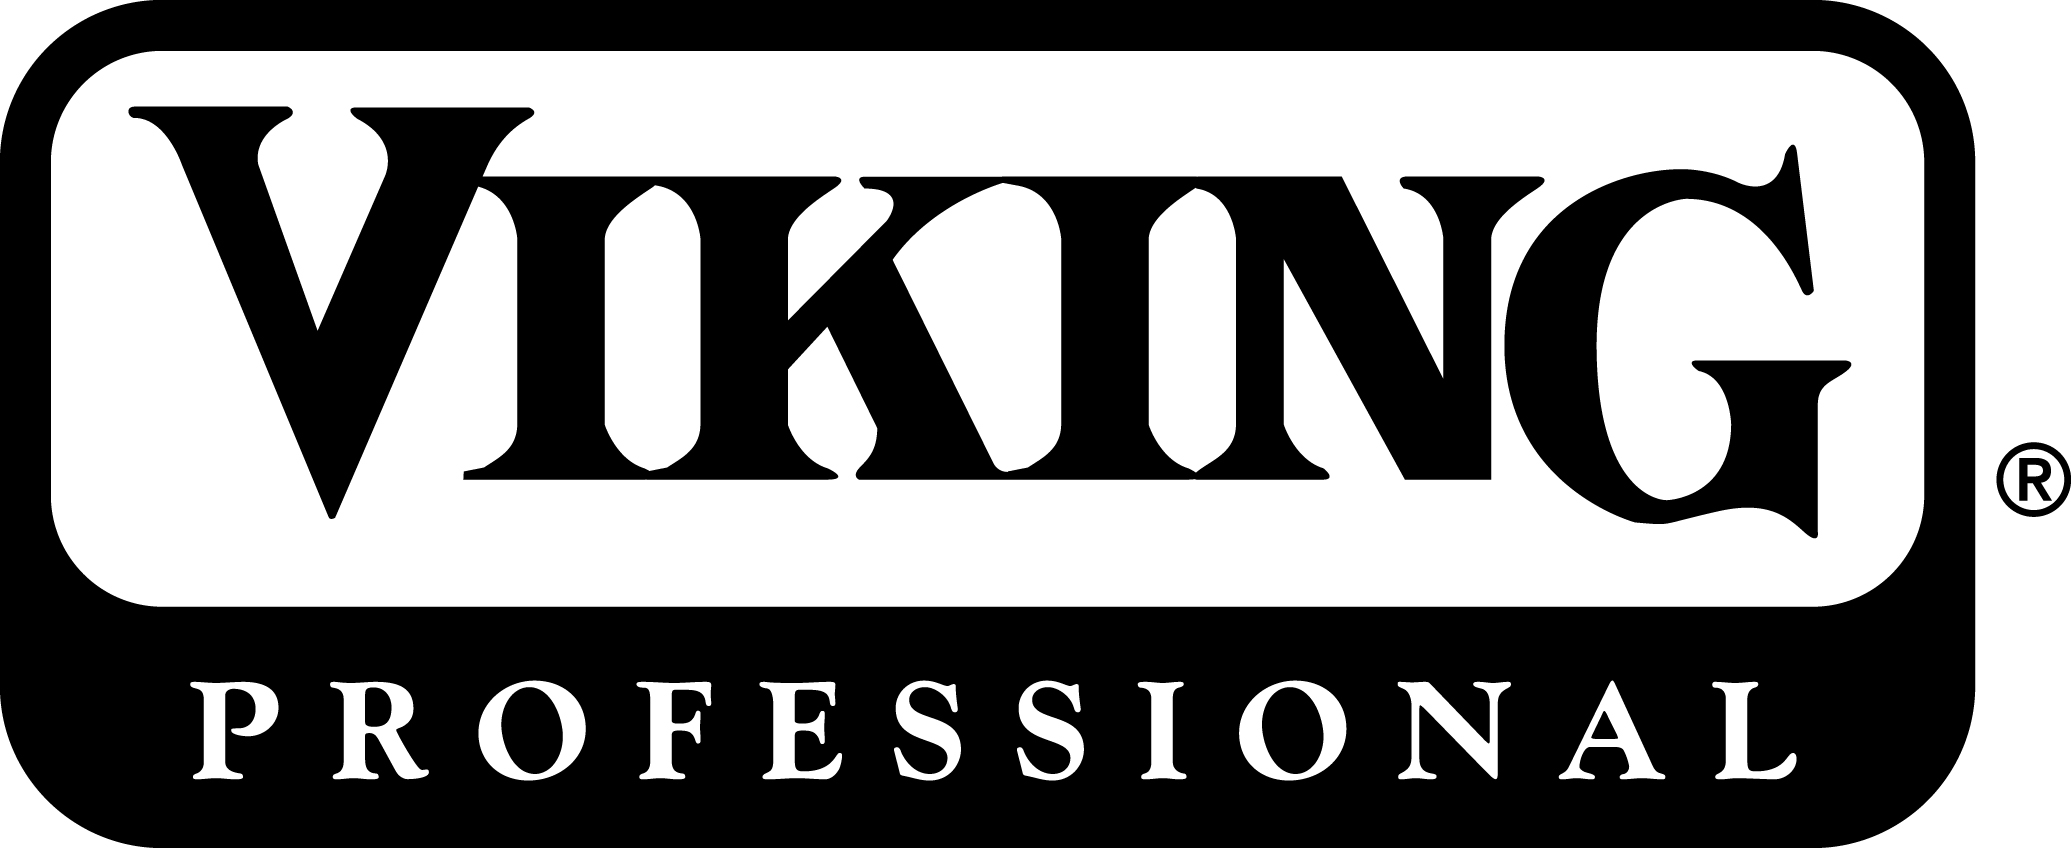 Viking Oven Repair Near Me, Kenmore Oven Repair